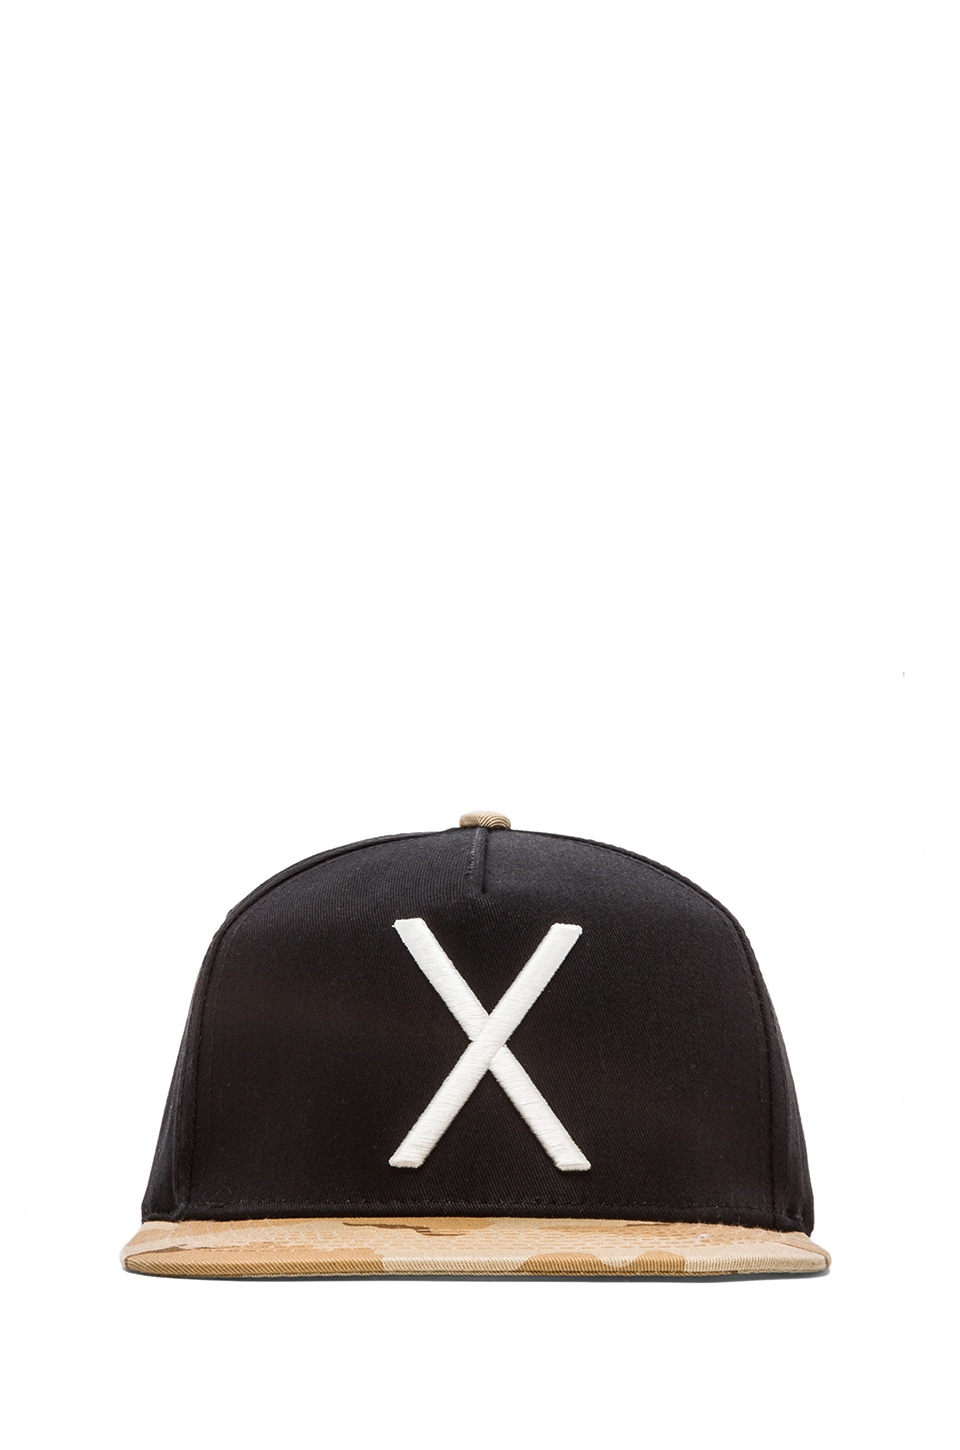 10 Deep Larger Living Hat in Black